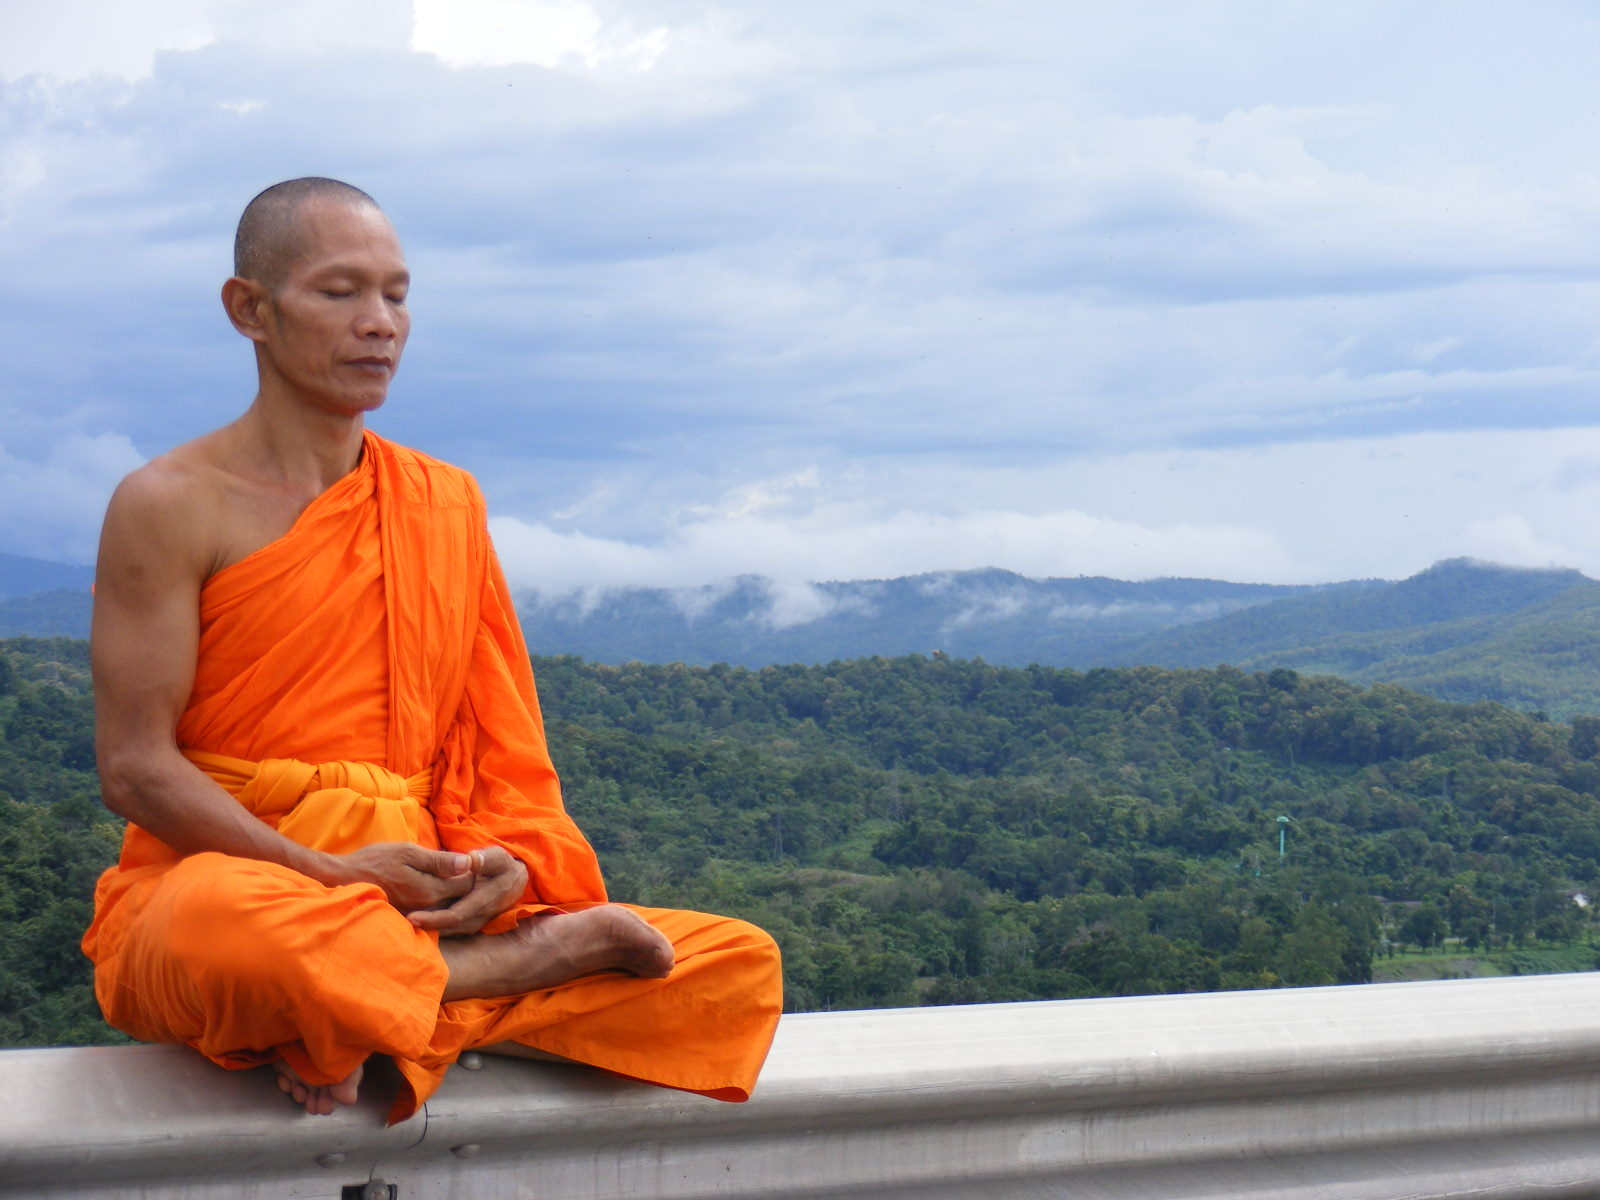 You don't have to be a Tibetan monk to meditate